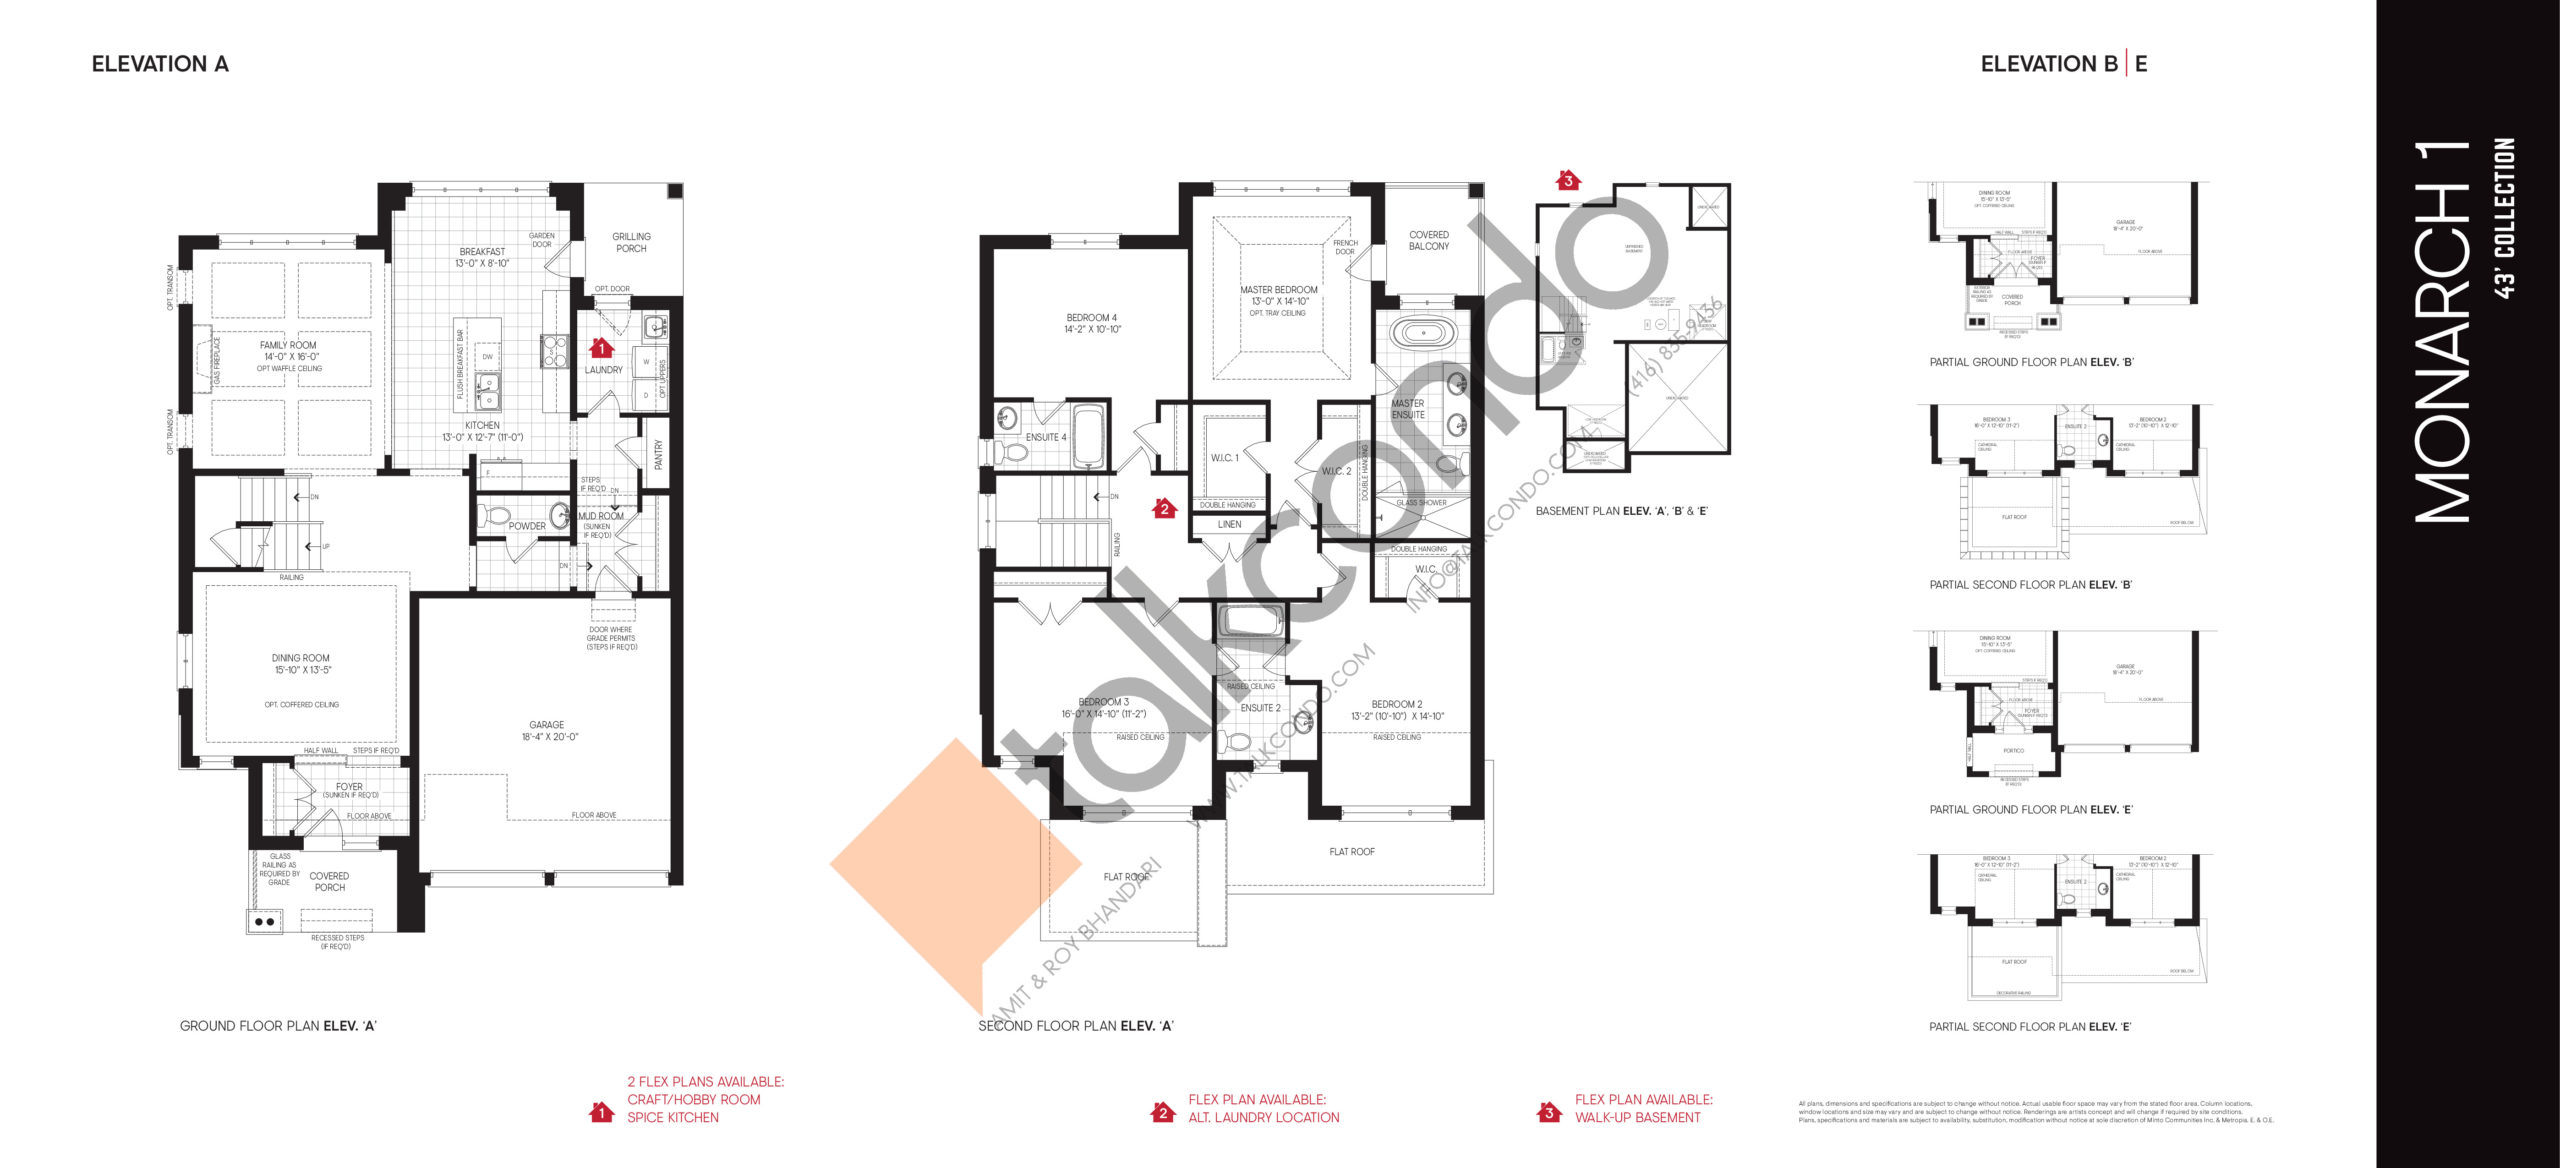 Monarch 1 - 43' Collection Floor Plan at Union Village - 2837 sq.ft